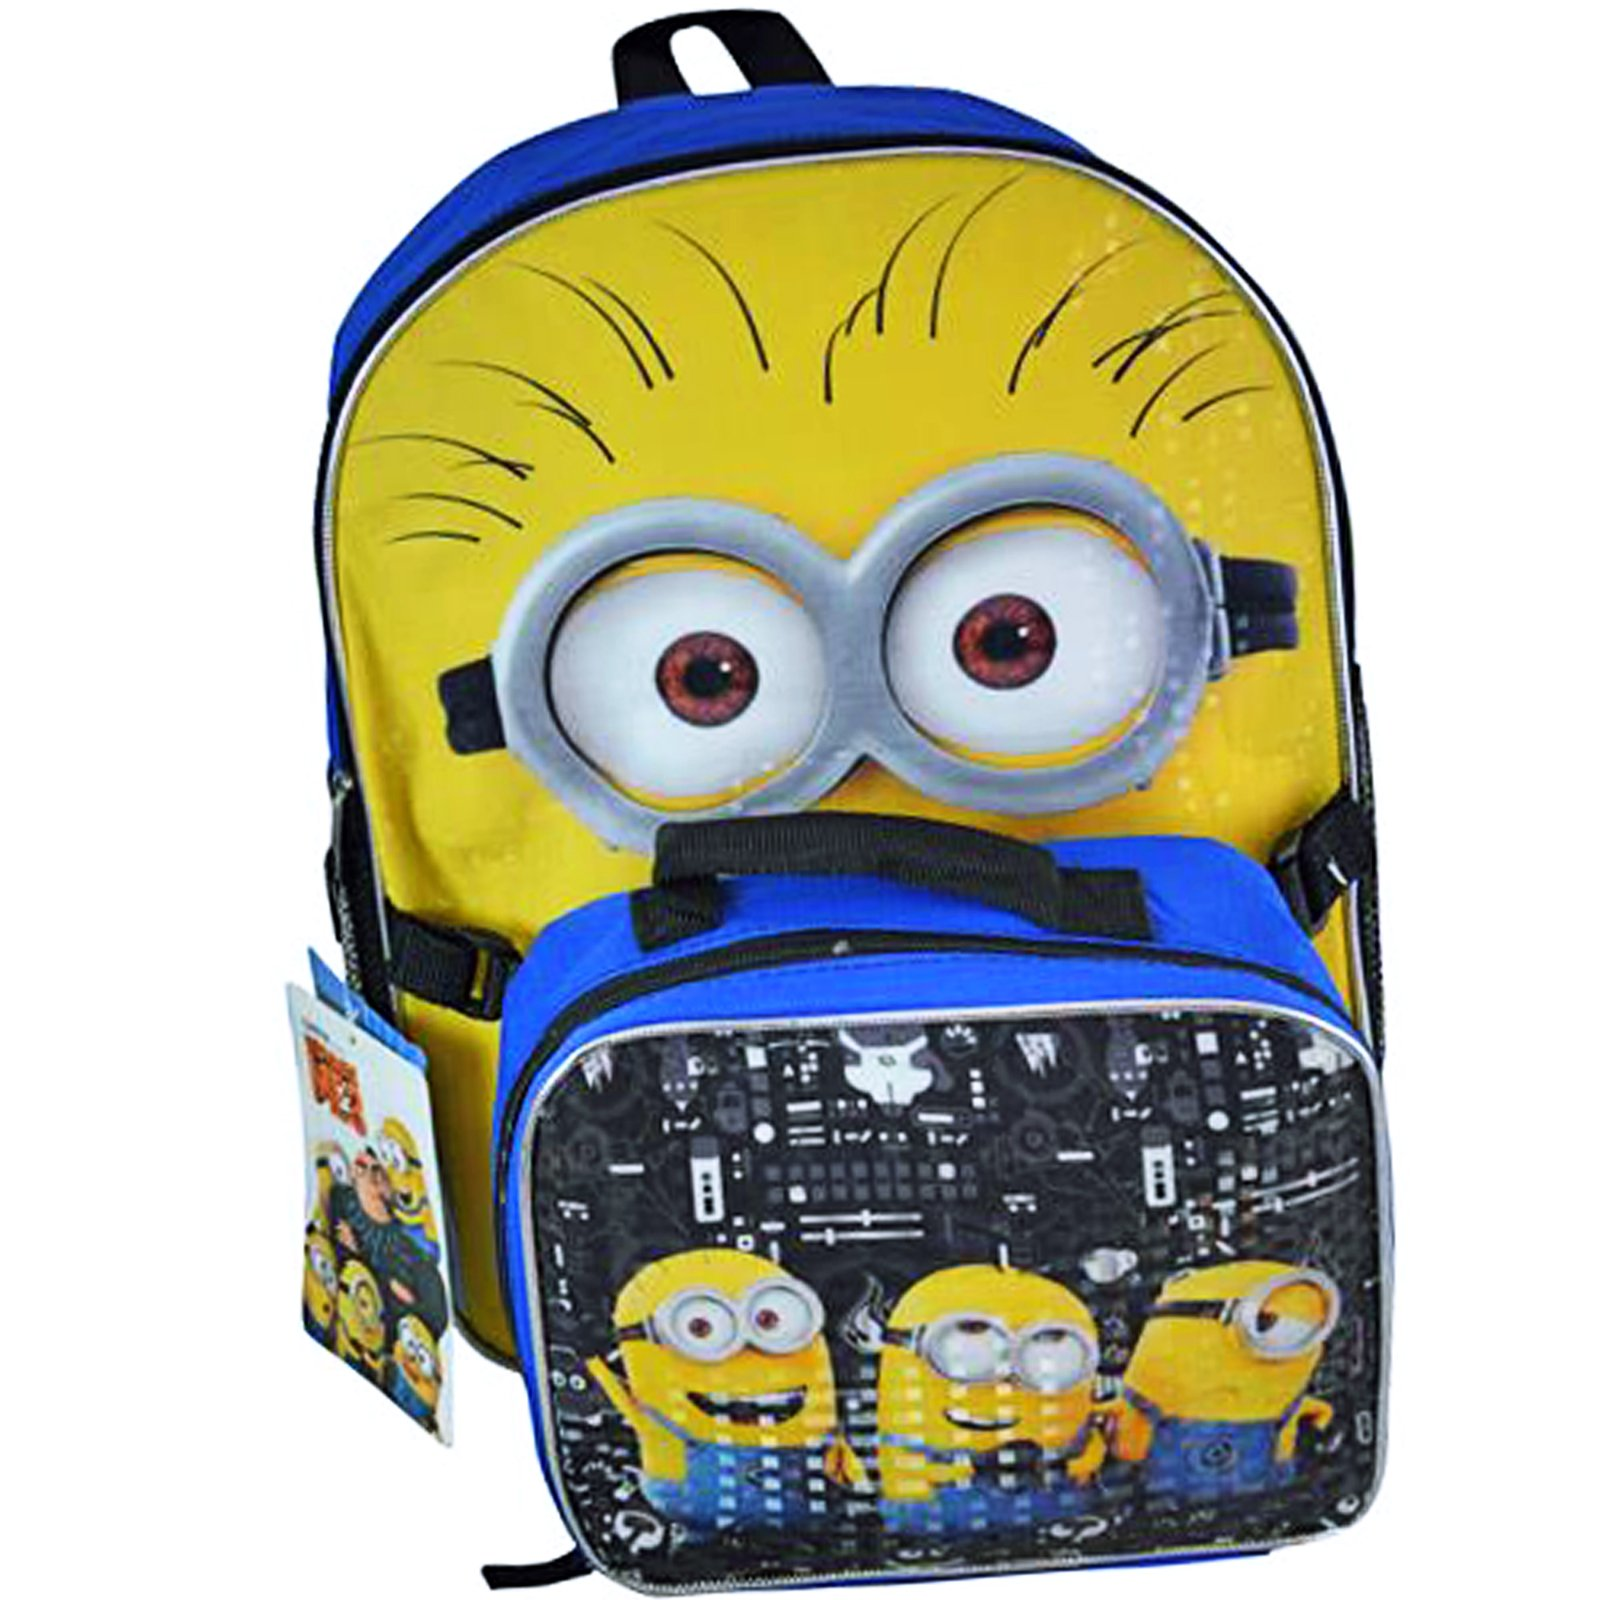 Minions Backpack and Lunch Kit